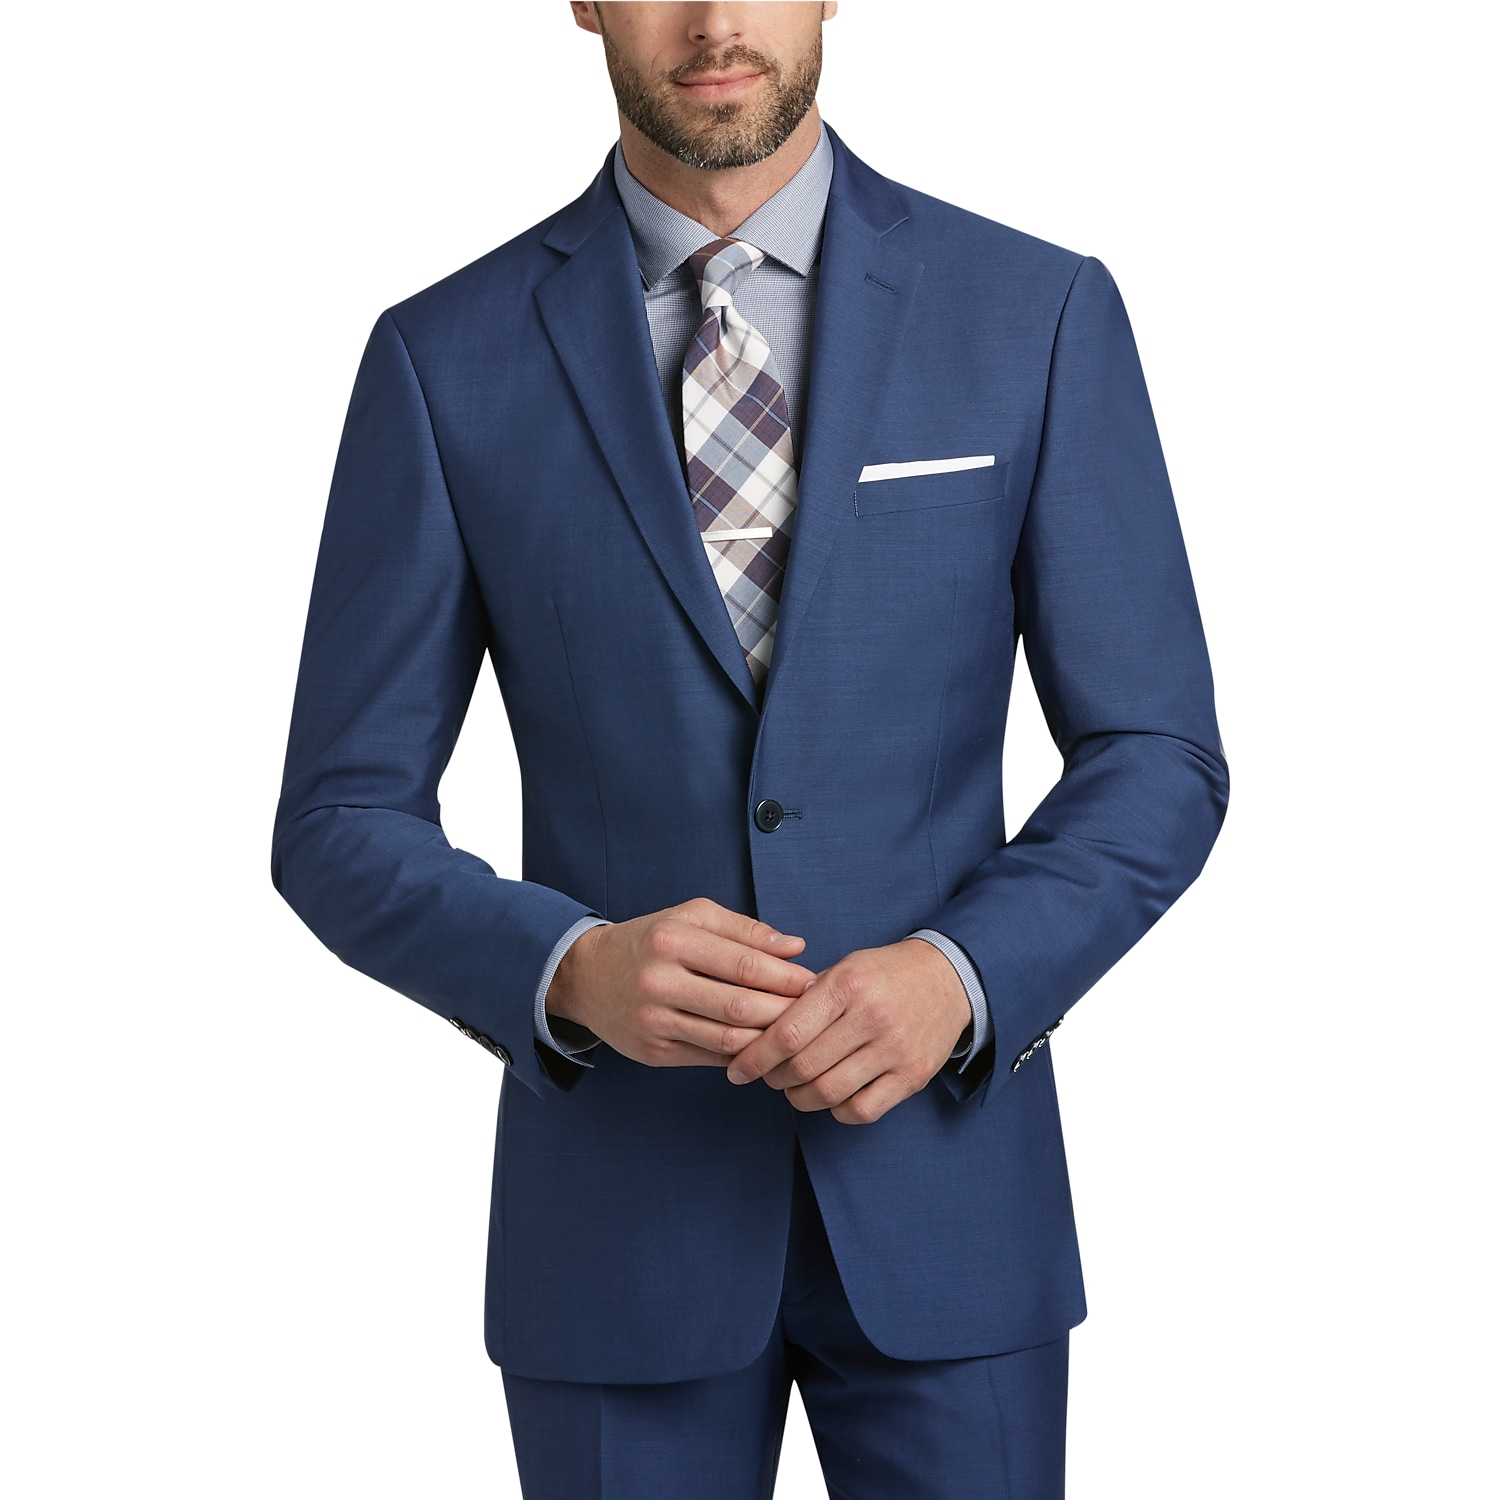 Blue Postman Suit - Men's Suits - Calvin Klein | Men's Wearhouse